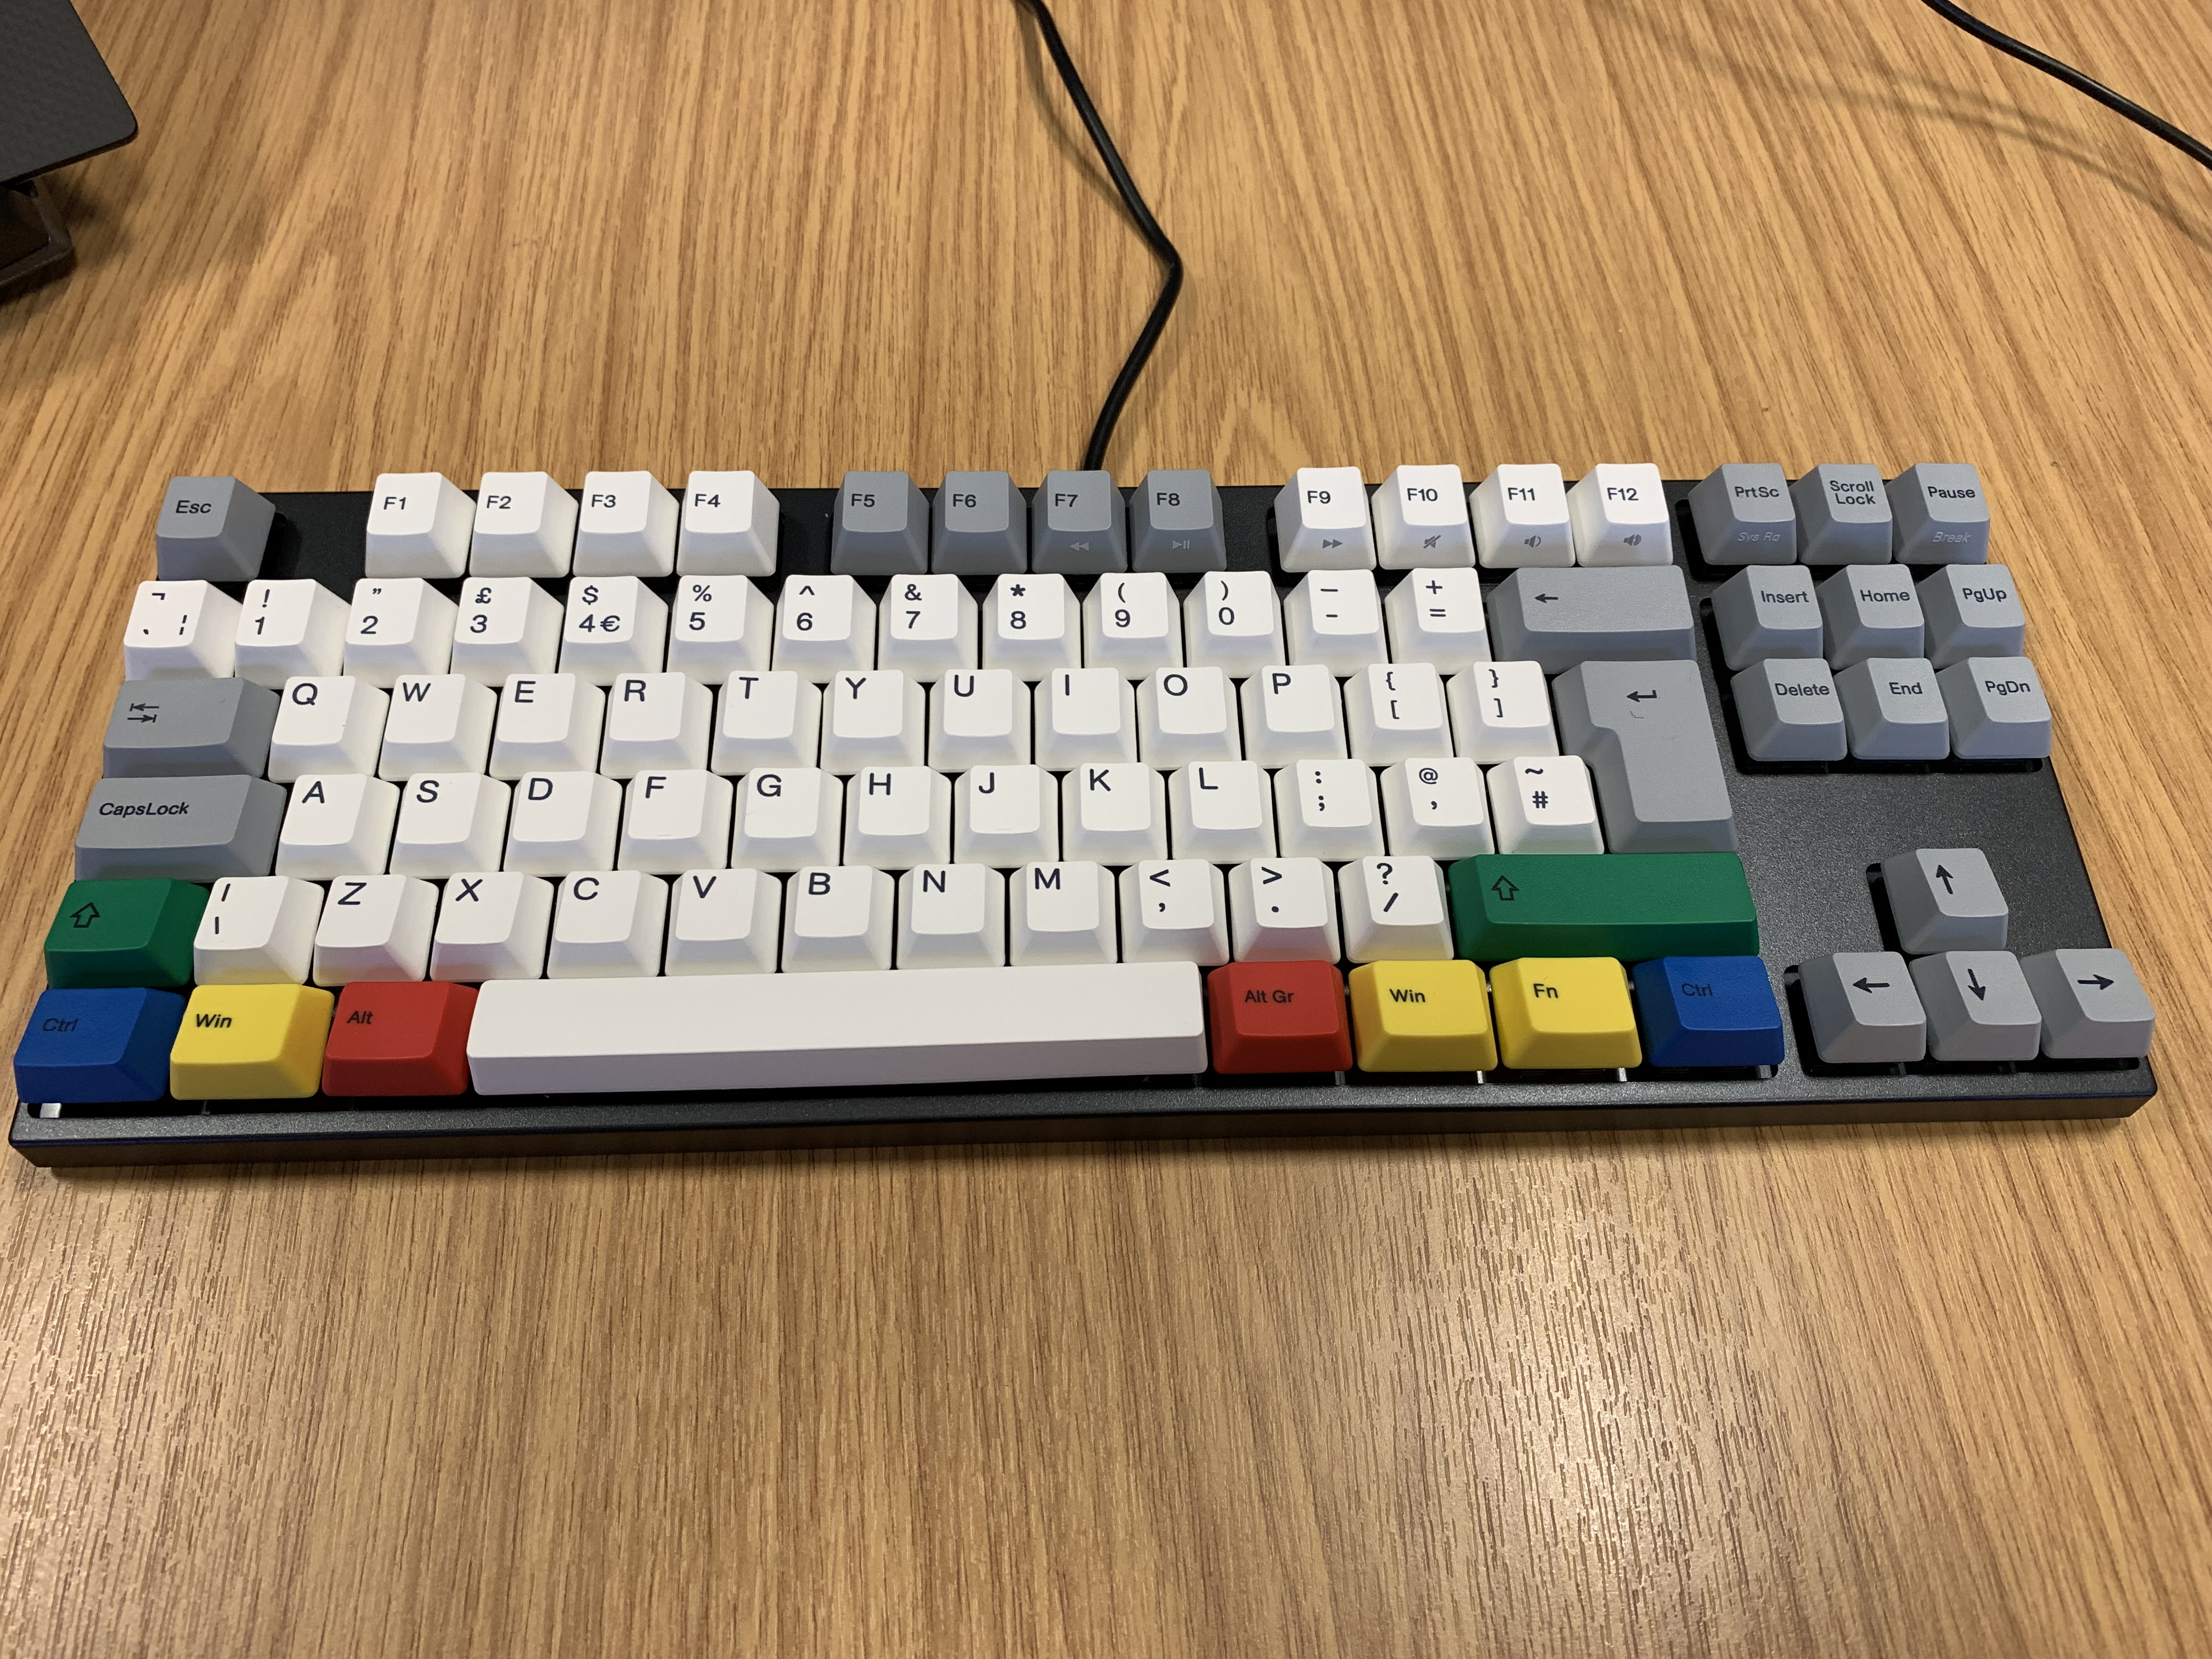 A Varmillo Keyboard with Cherry MX Clears